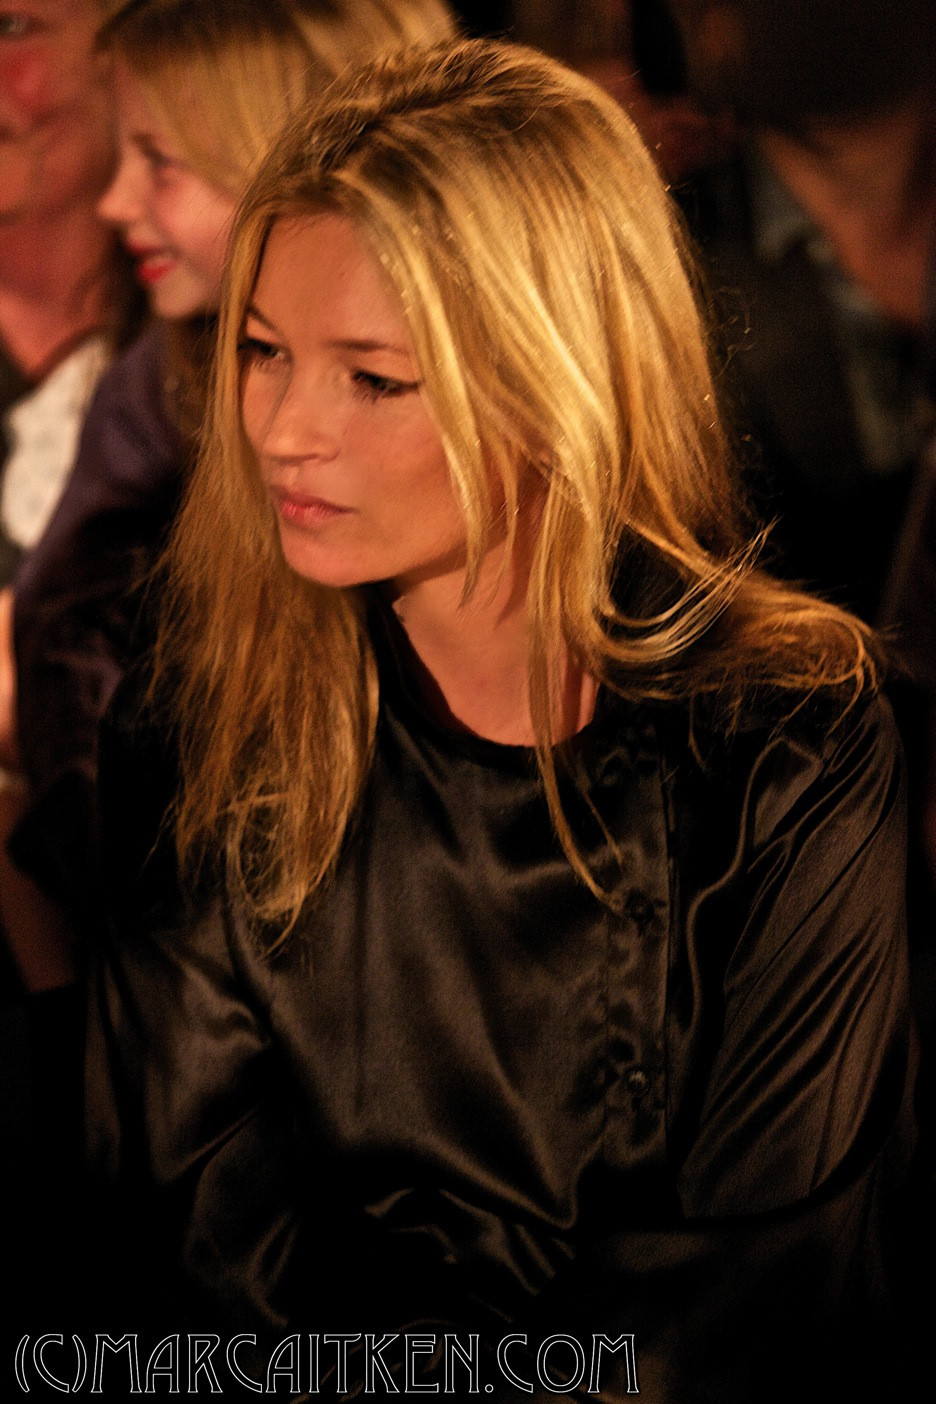 Kate Moss at London Fashion Week 2011 2.jpg